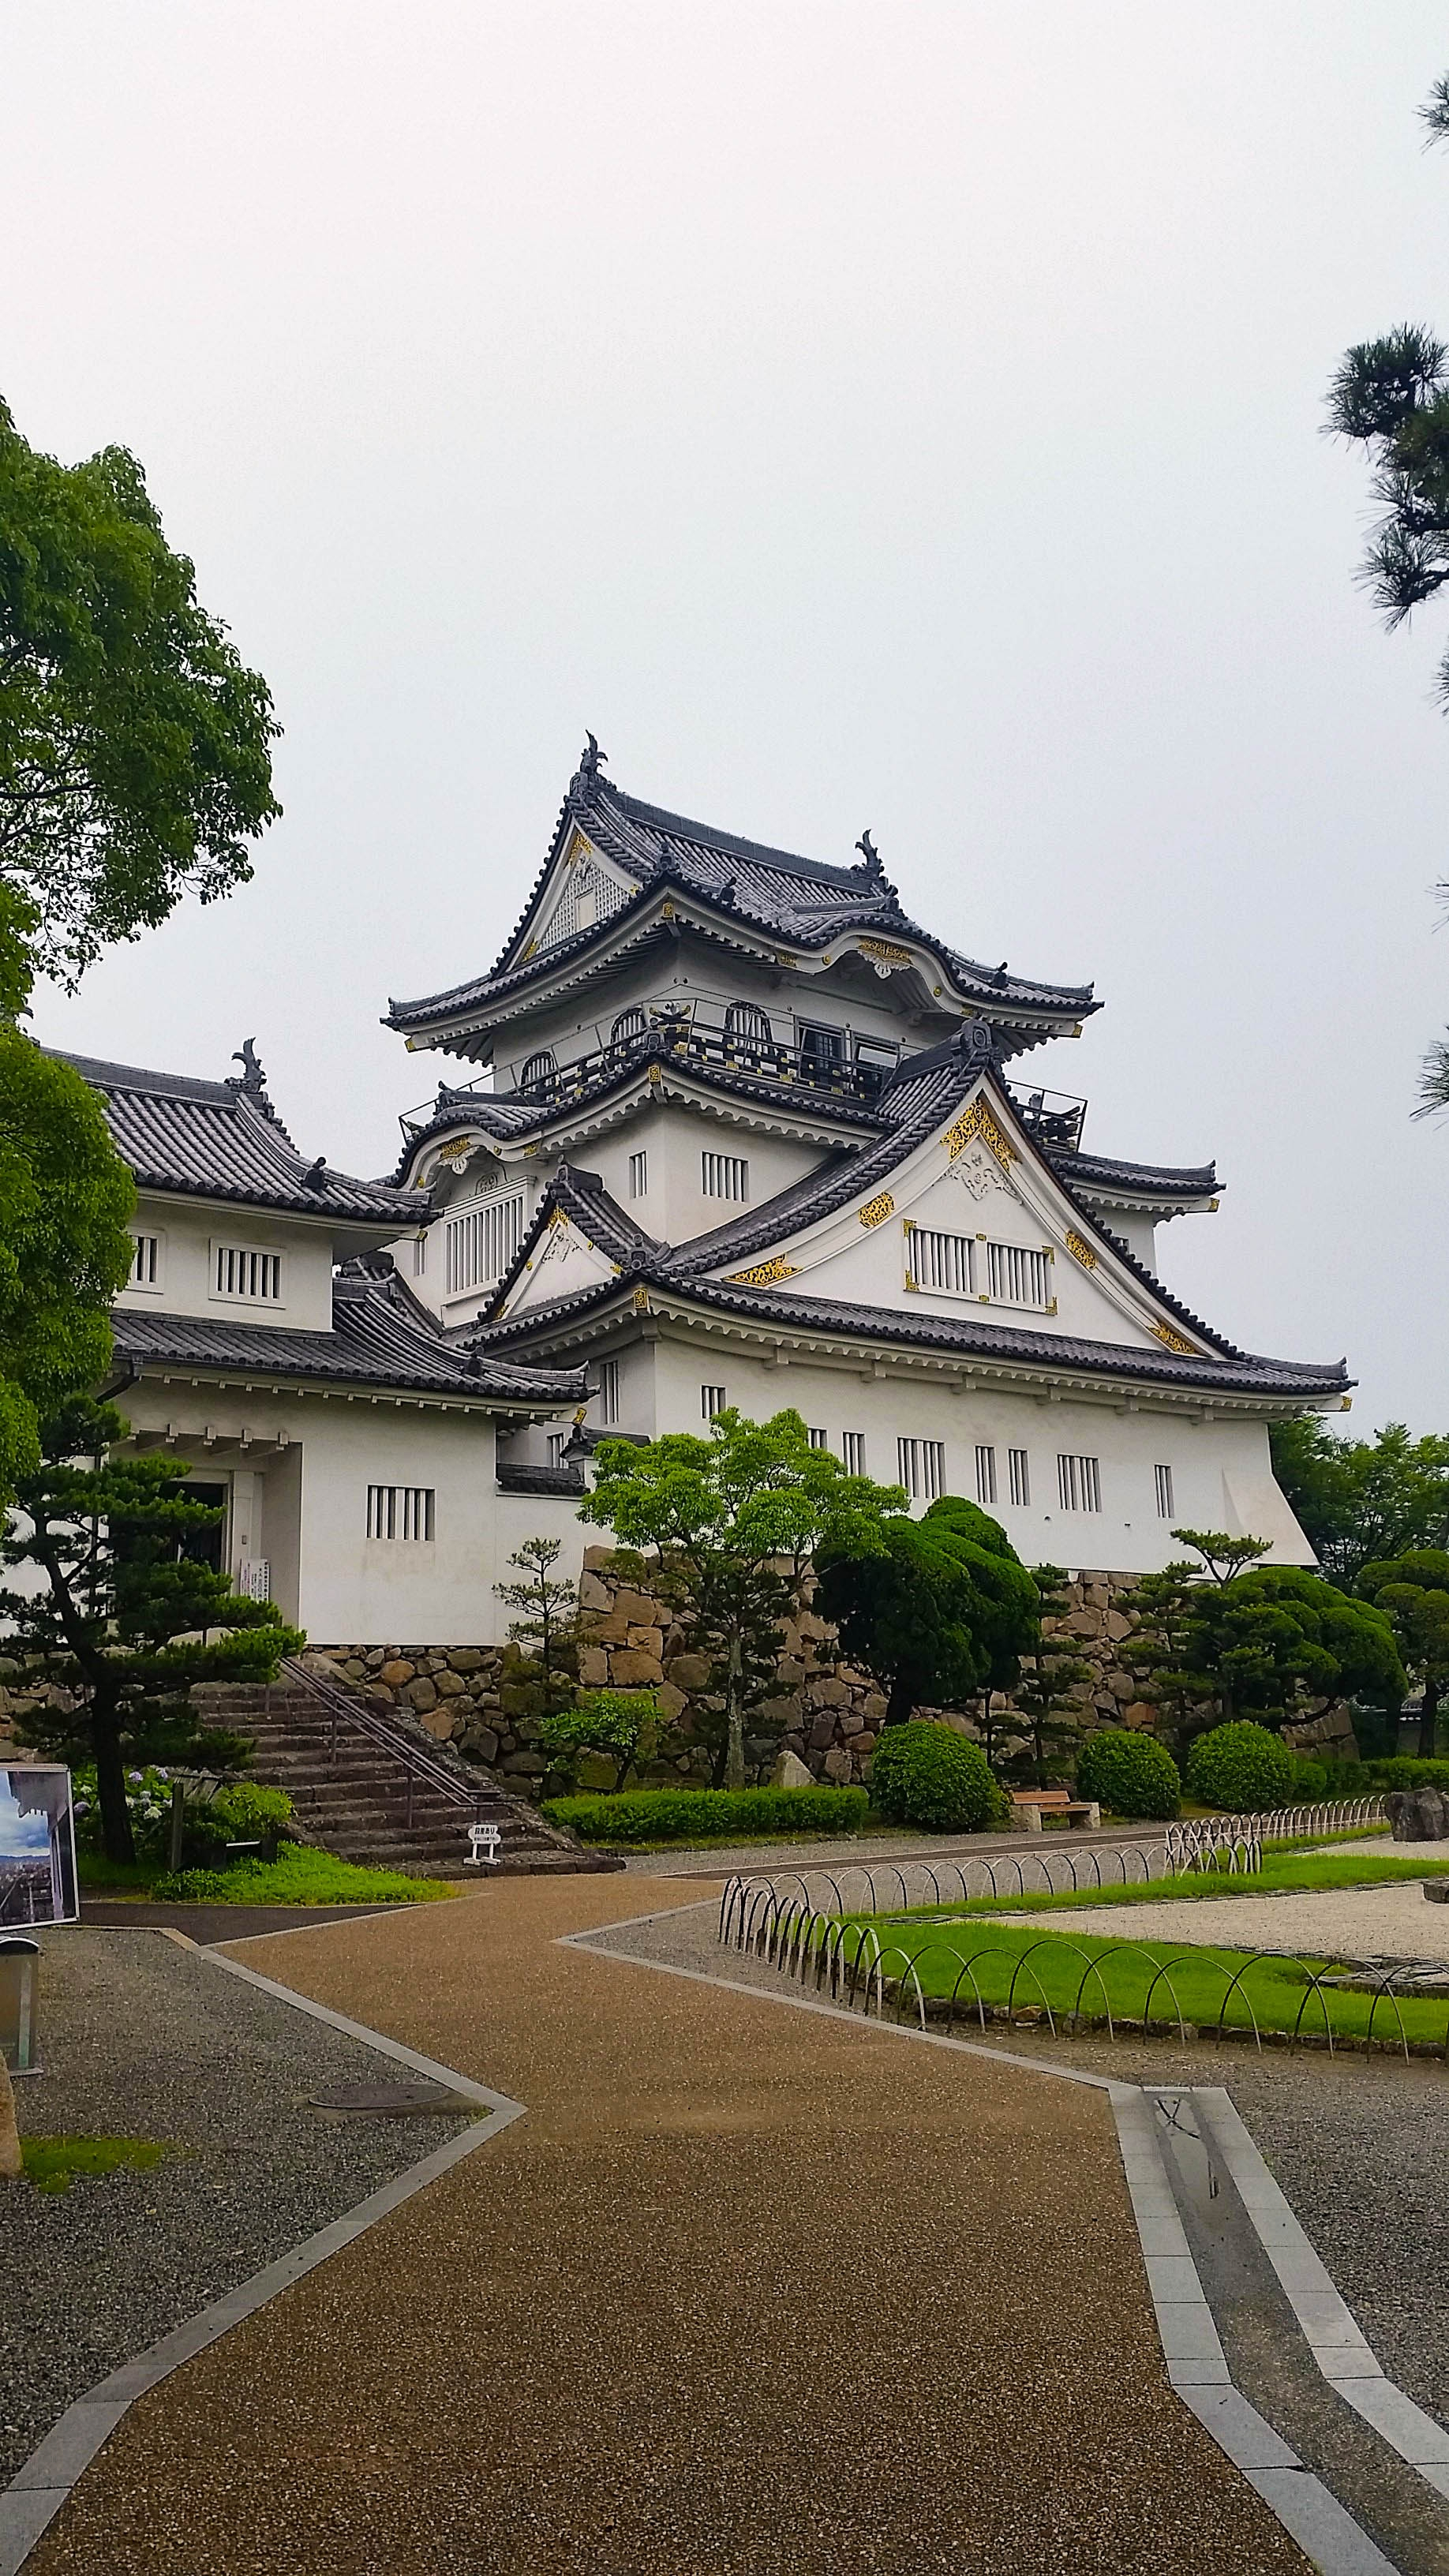 kishiwada castle and subjugation of negoro-ji - izanau